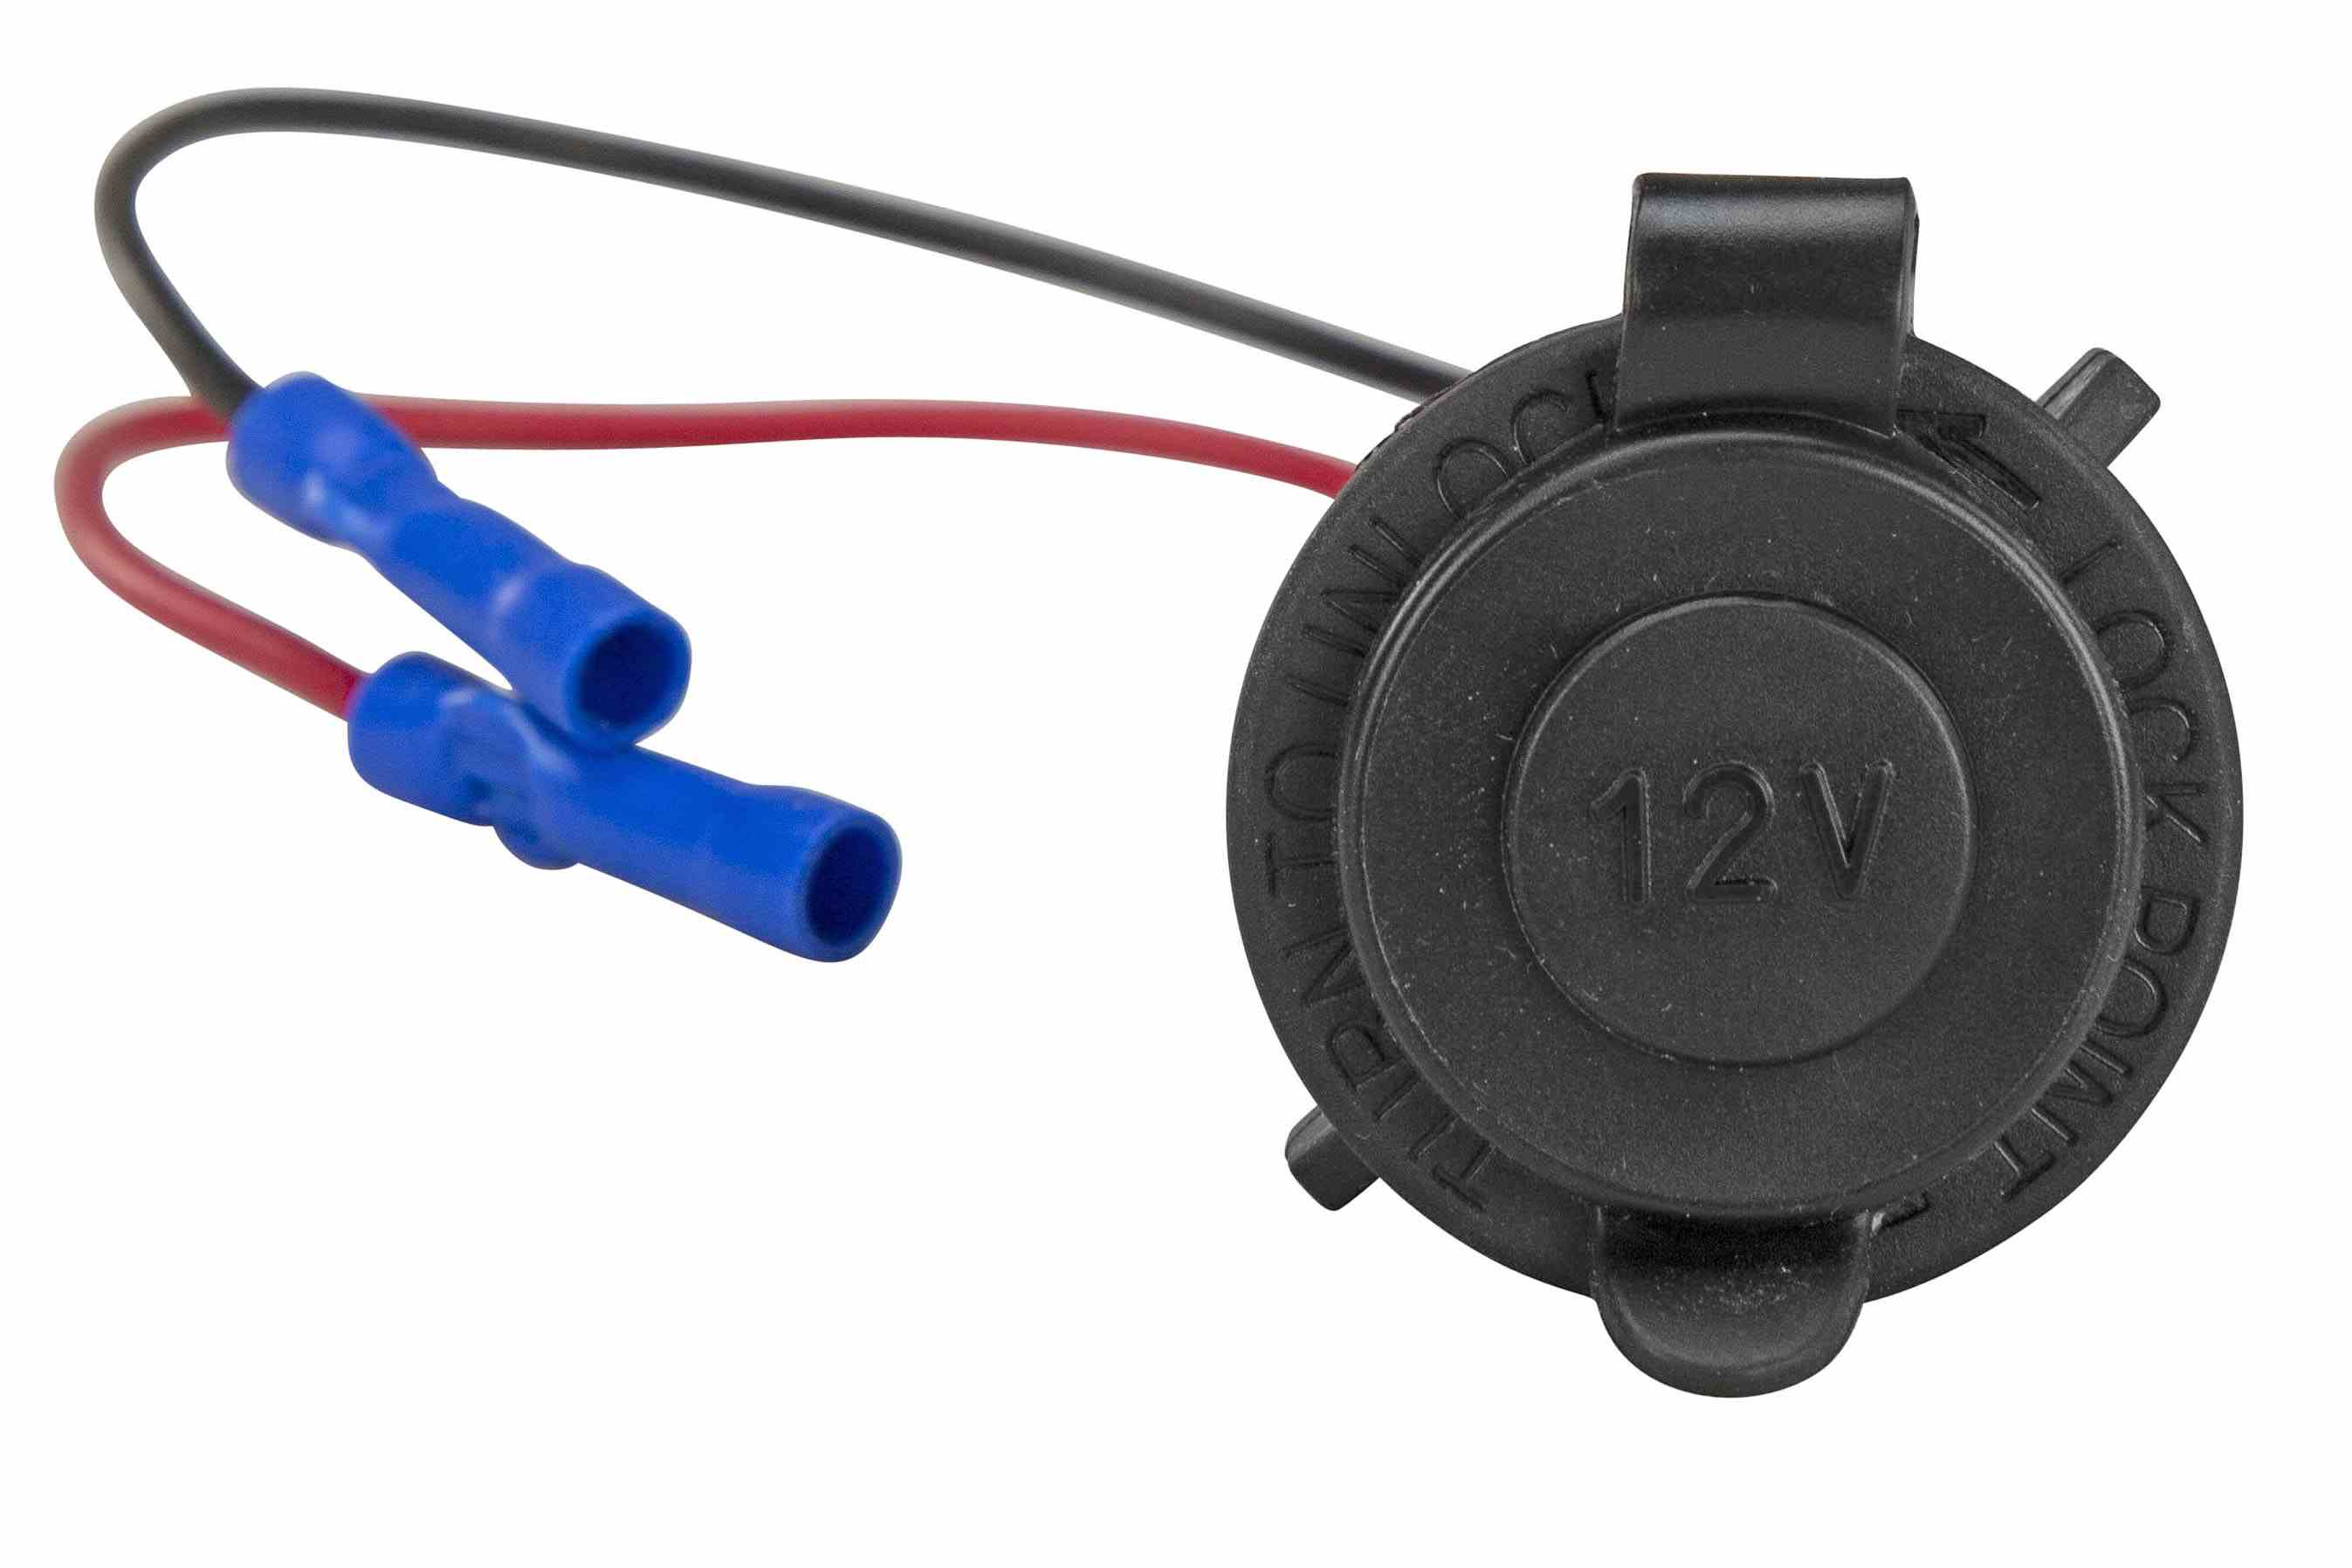 Cigarette Lighter Plug Socket Marine Rated For Boat Use 12 24 Volt Wiring And Receptacle Hi Res Image 3